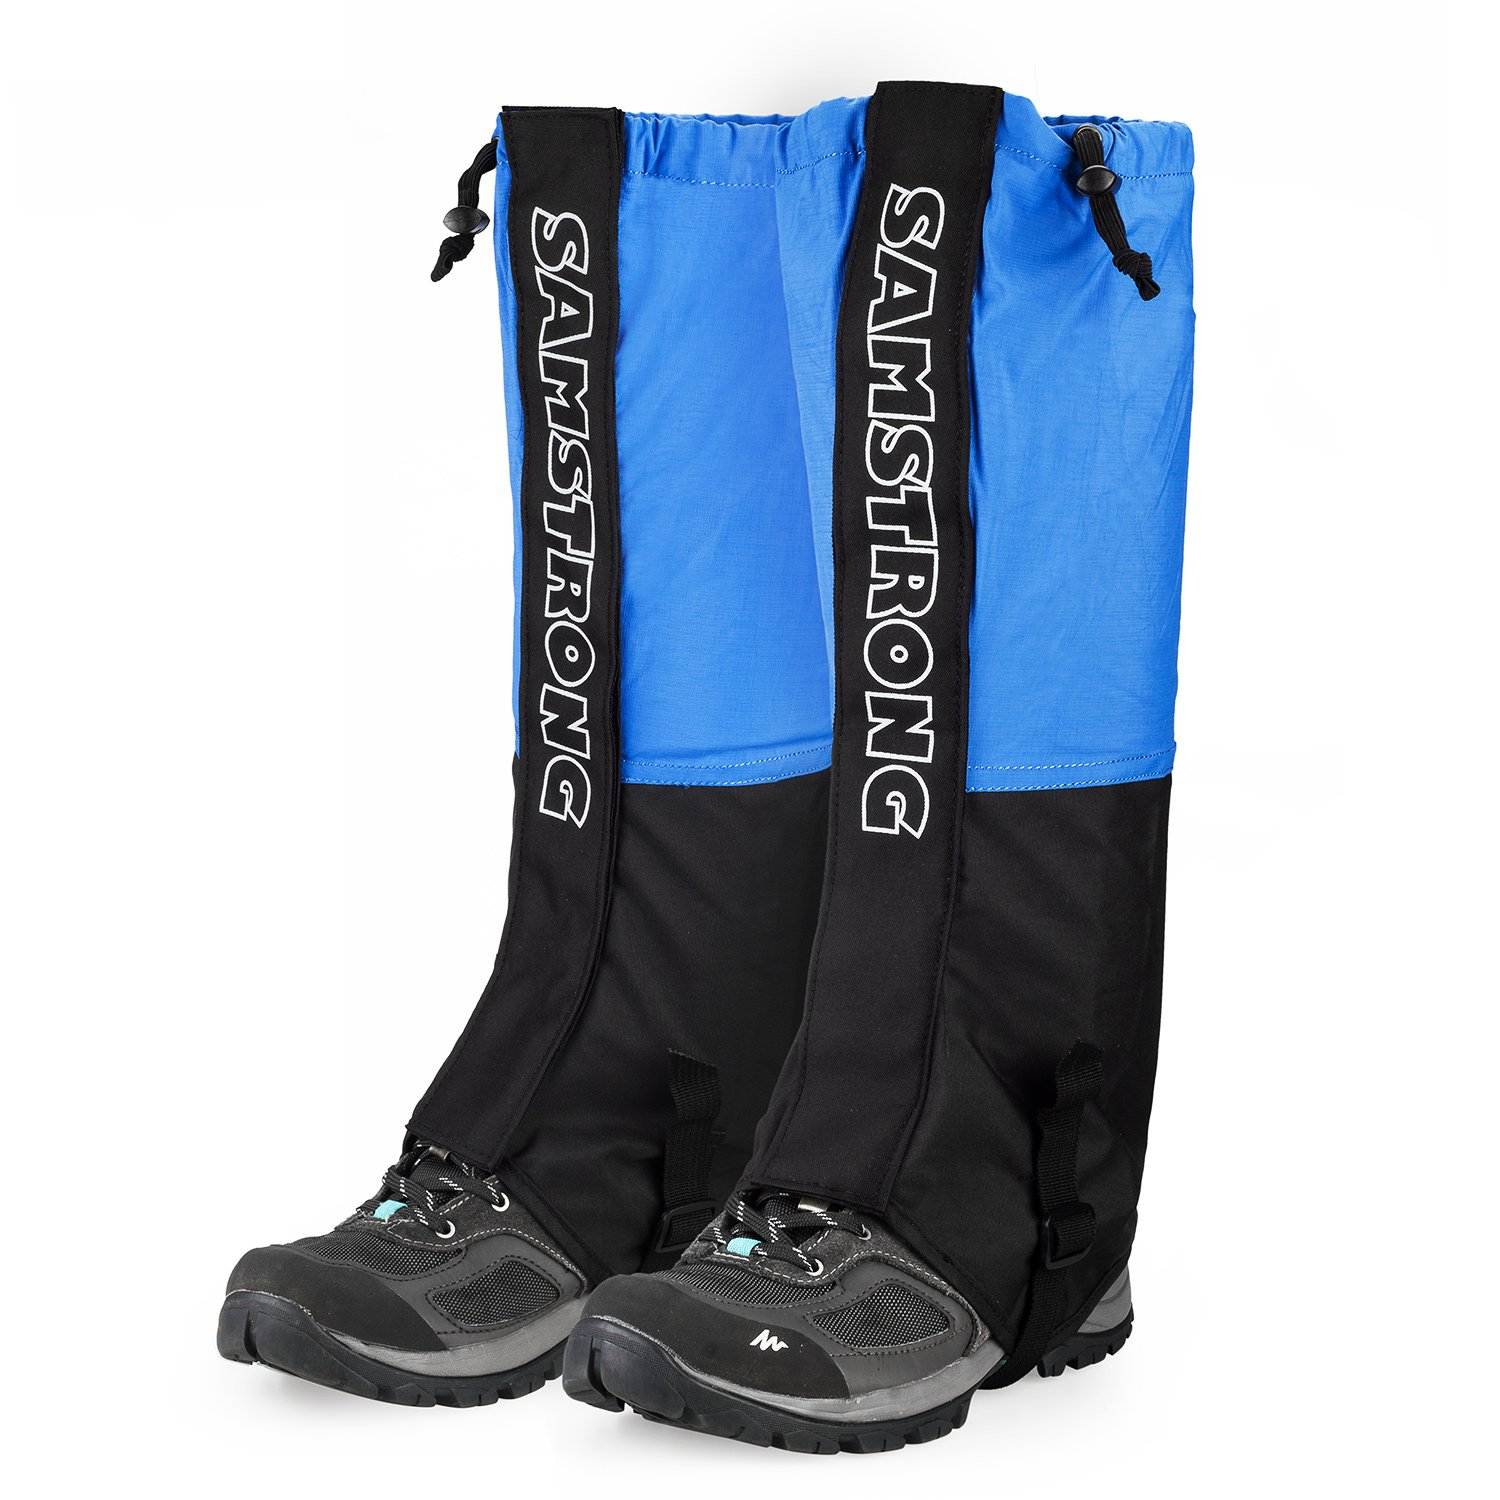 FANBX Waterproof Leg Gaiters for Men Woman Hiking Leg Gaiters, Breathable Legging Cover for Outdoor Research Camping Hiking Climbing Snowing Fishing Hunting Trimming Grass